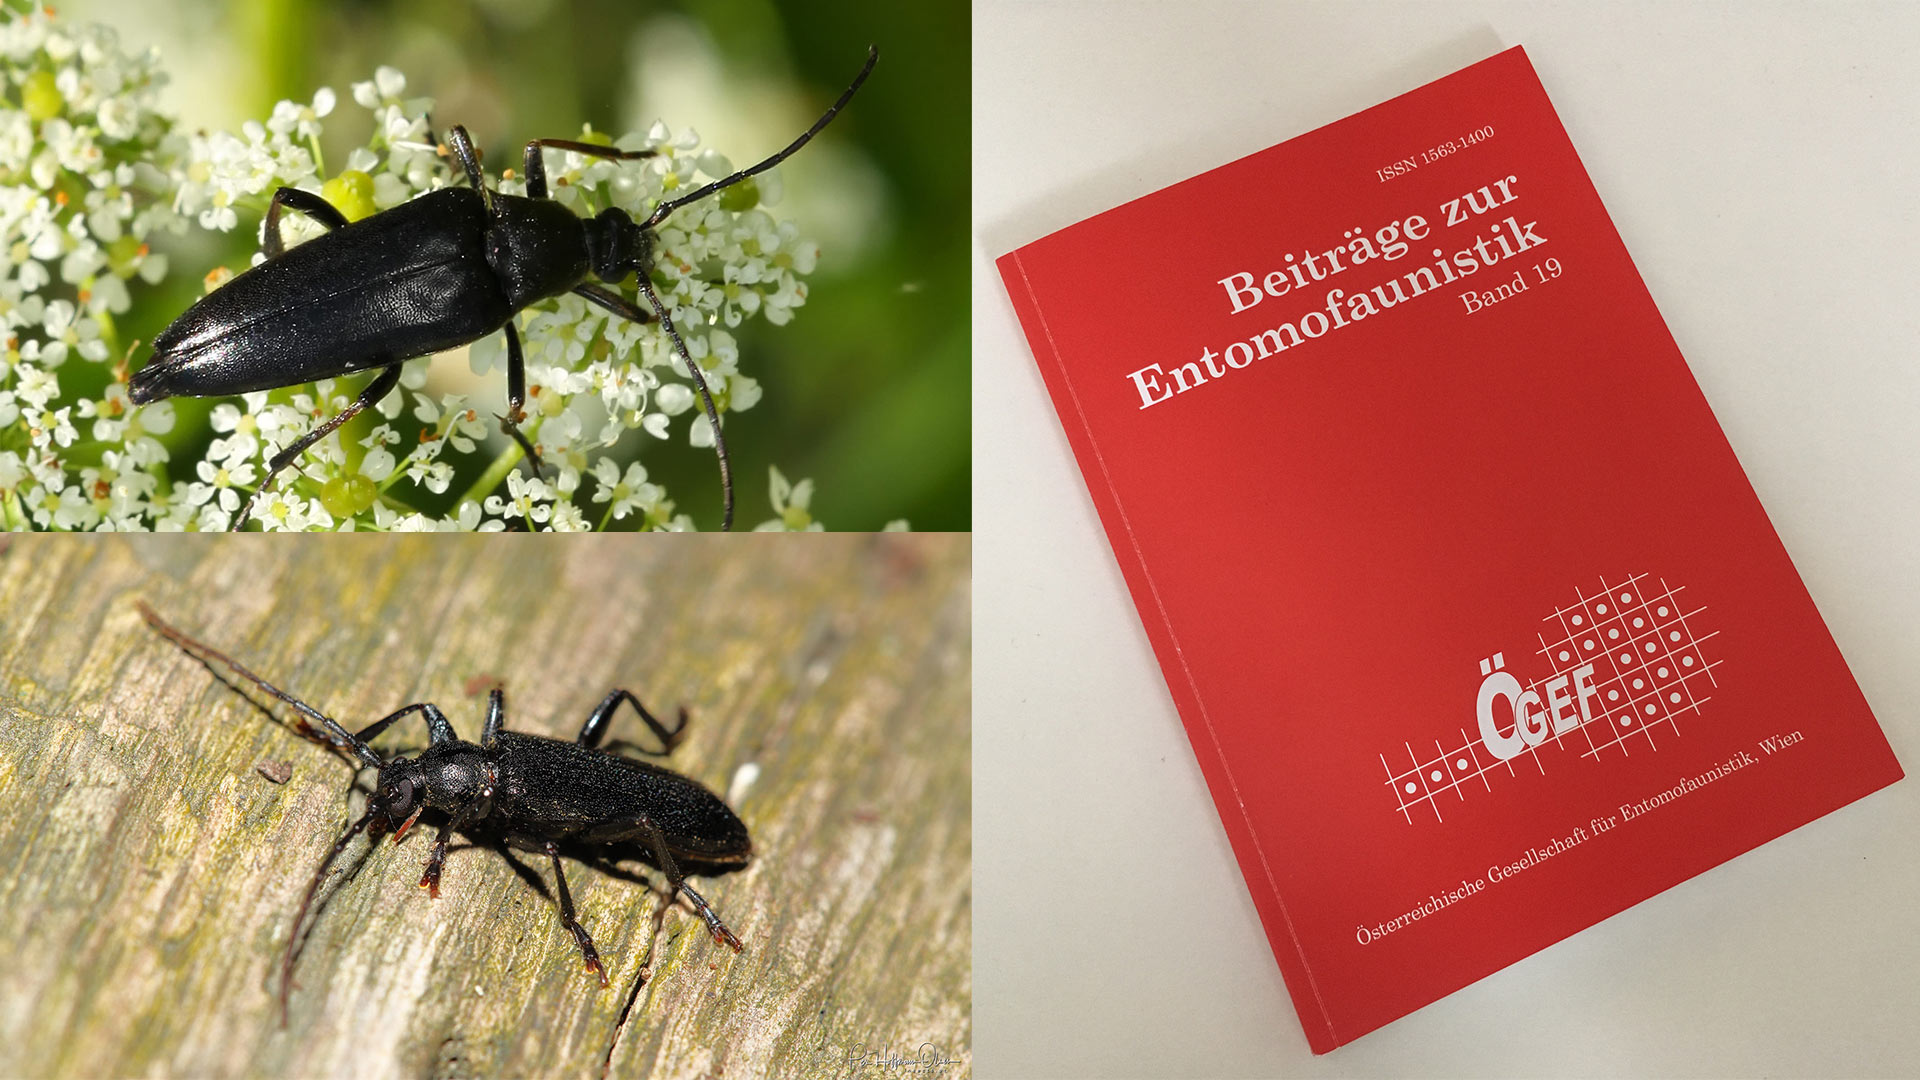 Two first records of Cerambycidae in Vienna